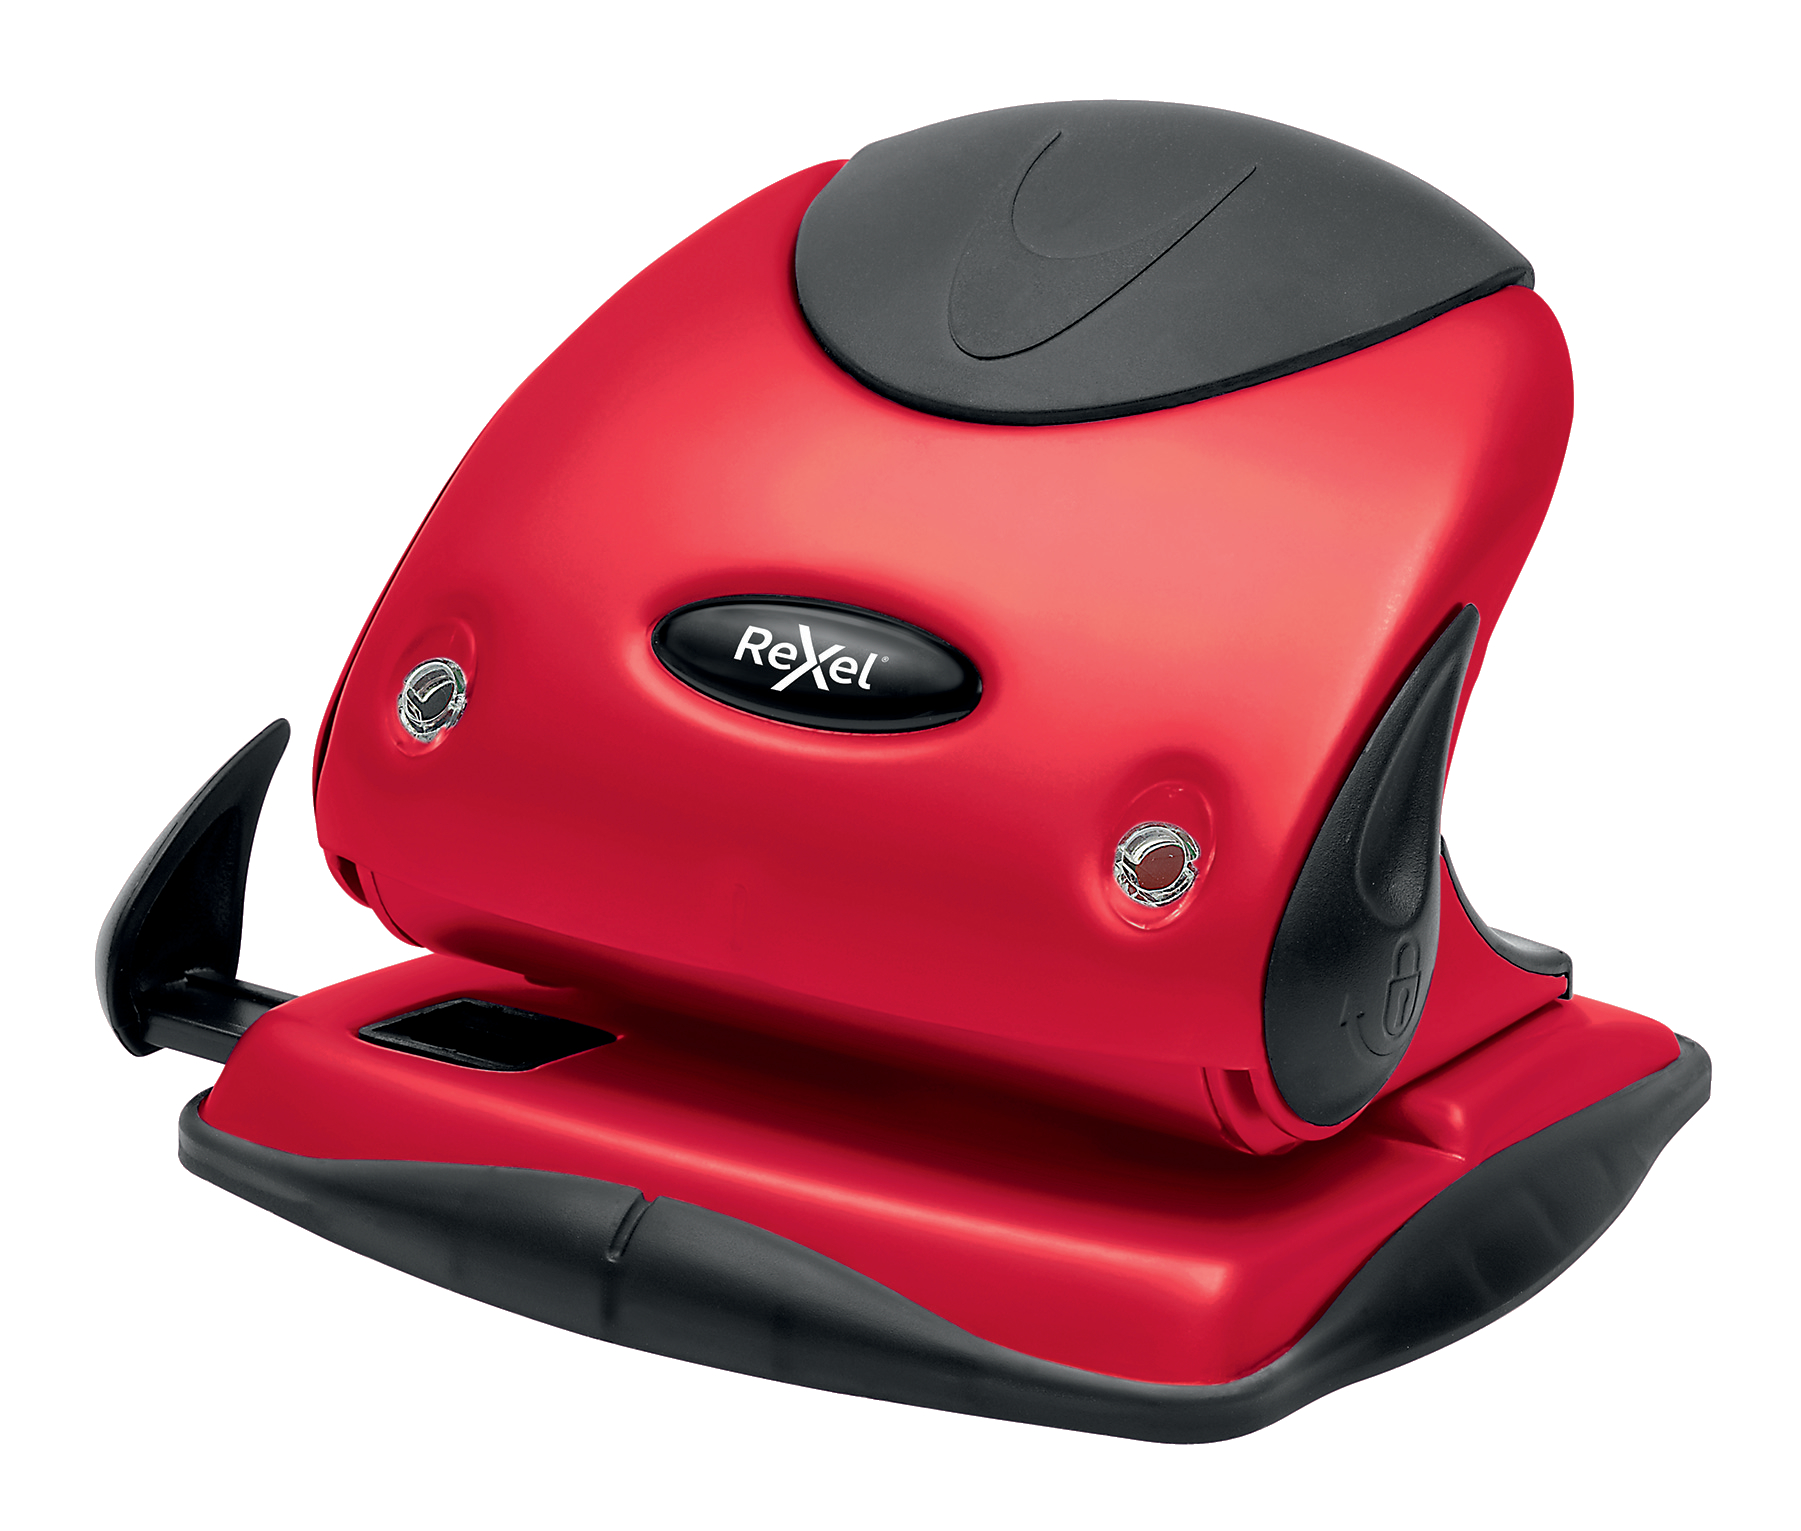 Rexel Choices P225 2 Hole Punch Red